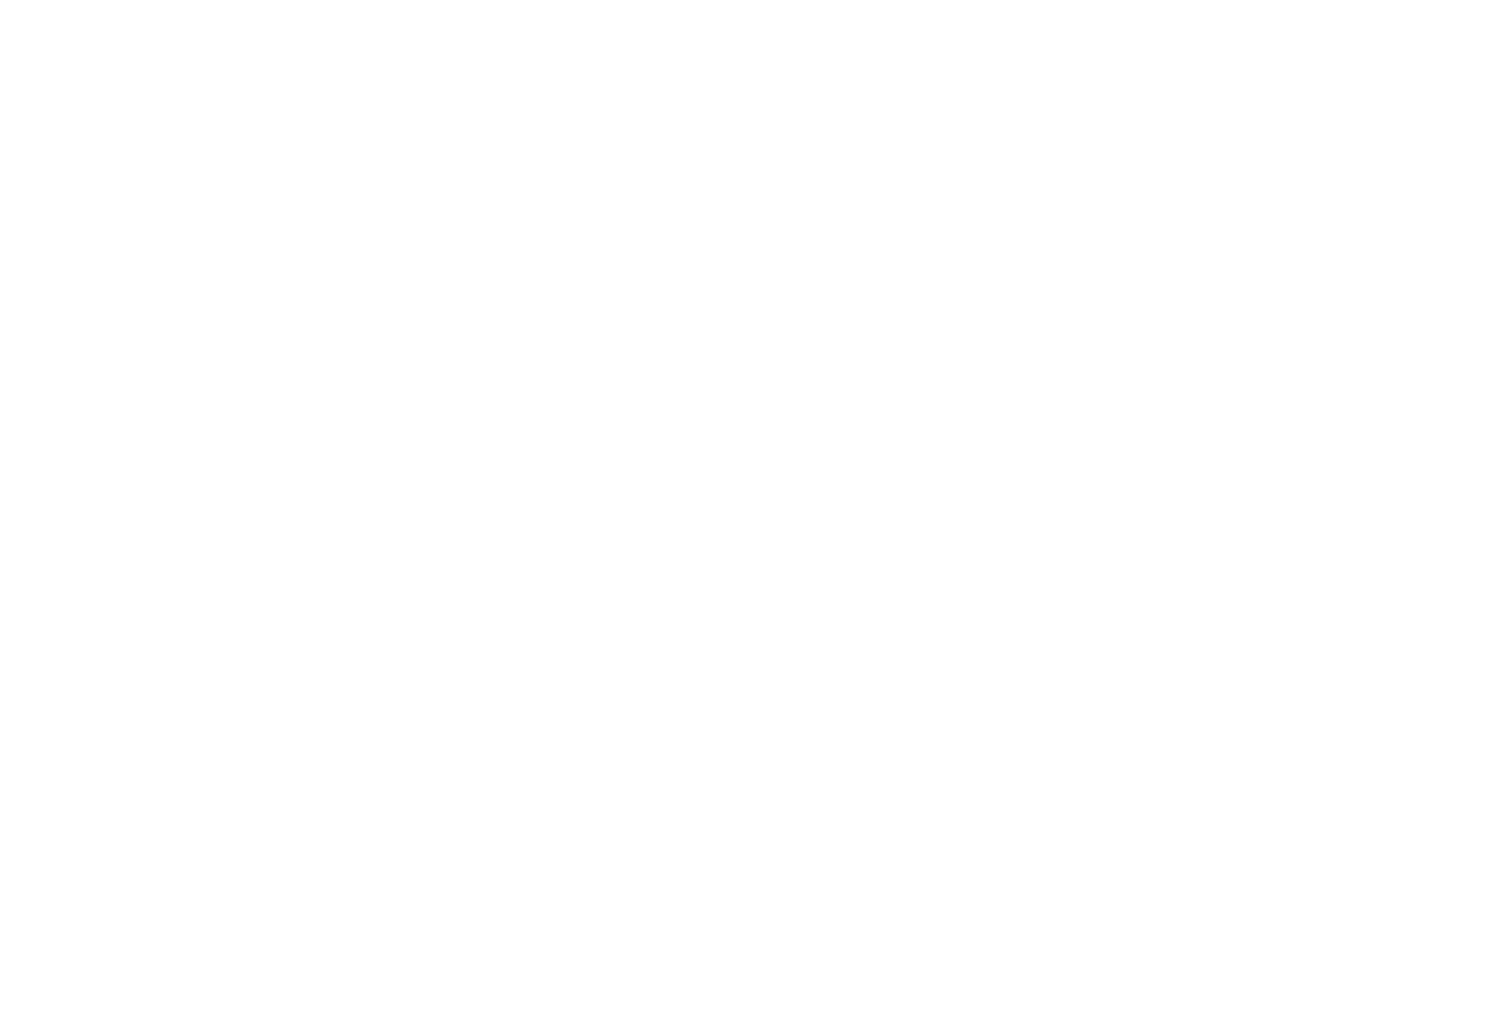 First Jamaica Community Urban Development Corporation